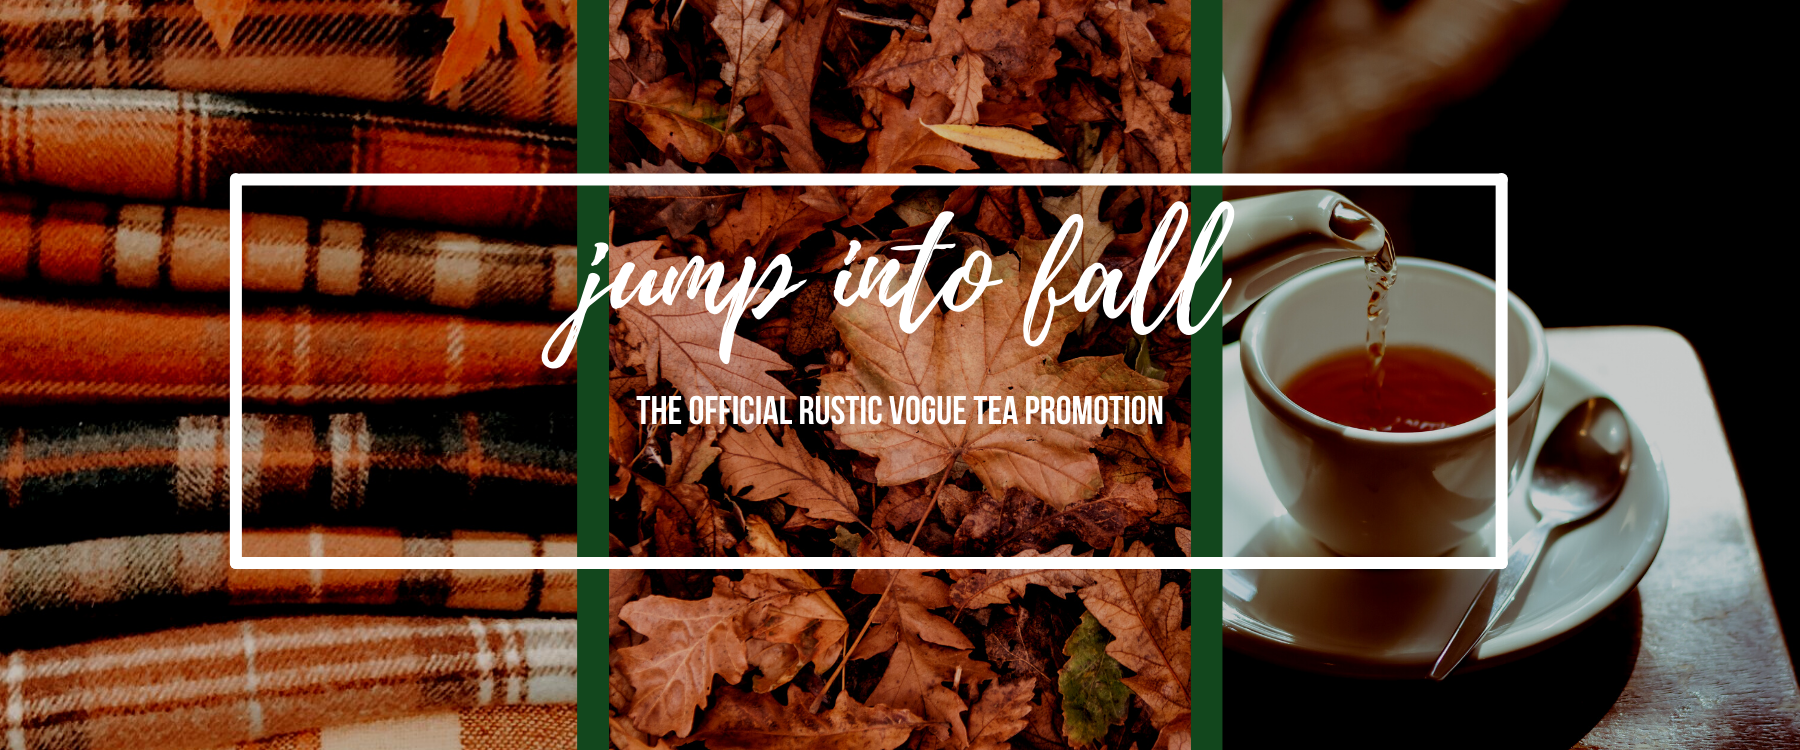 jump into fall with 30% off all teas and tea ware